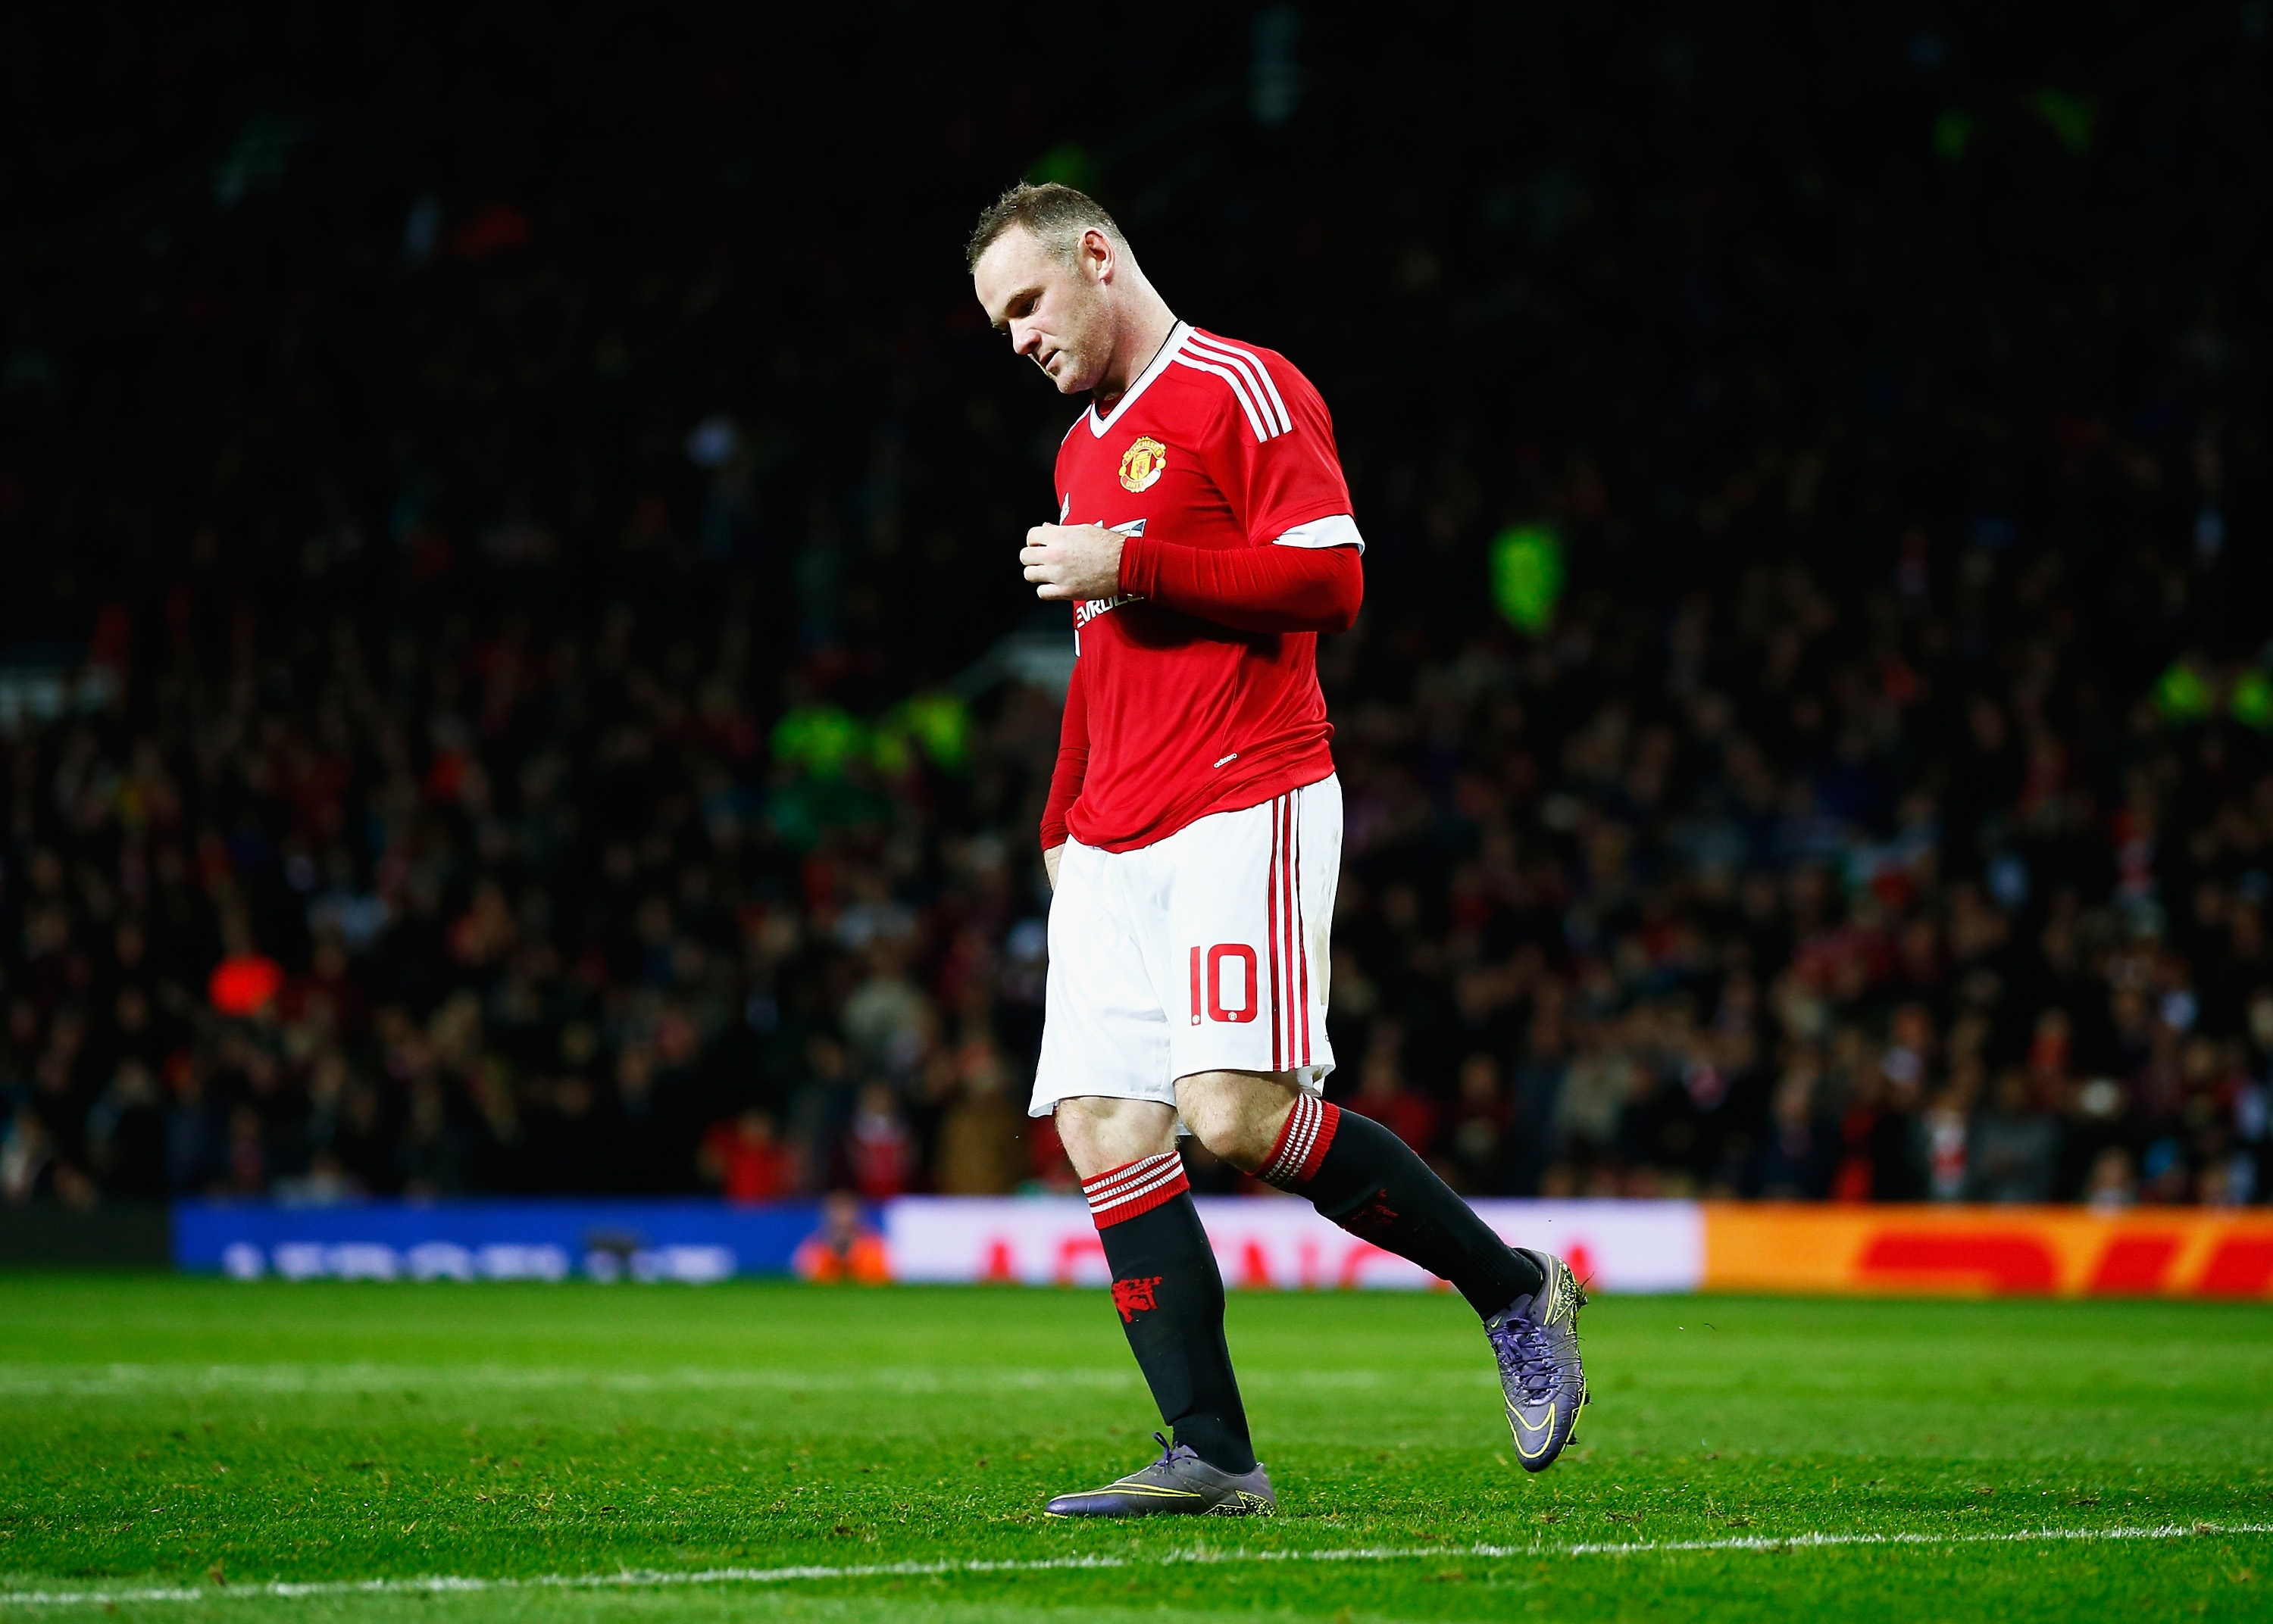 MANCHESTER, ENGLAND - OCTOBER 28: Wayne Rooney of Manchester United looks dejected after failing to score in the penalty shoot out during the Capital One Cup Fourth Round match between Manchester United and Middlesbrough at Old Trafford on October 28, 2015 in Manchester, England. (Photo by Shaun Botterill/Getty Images)